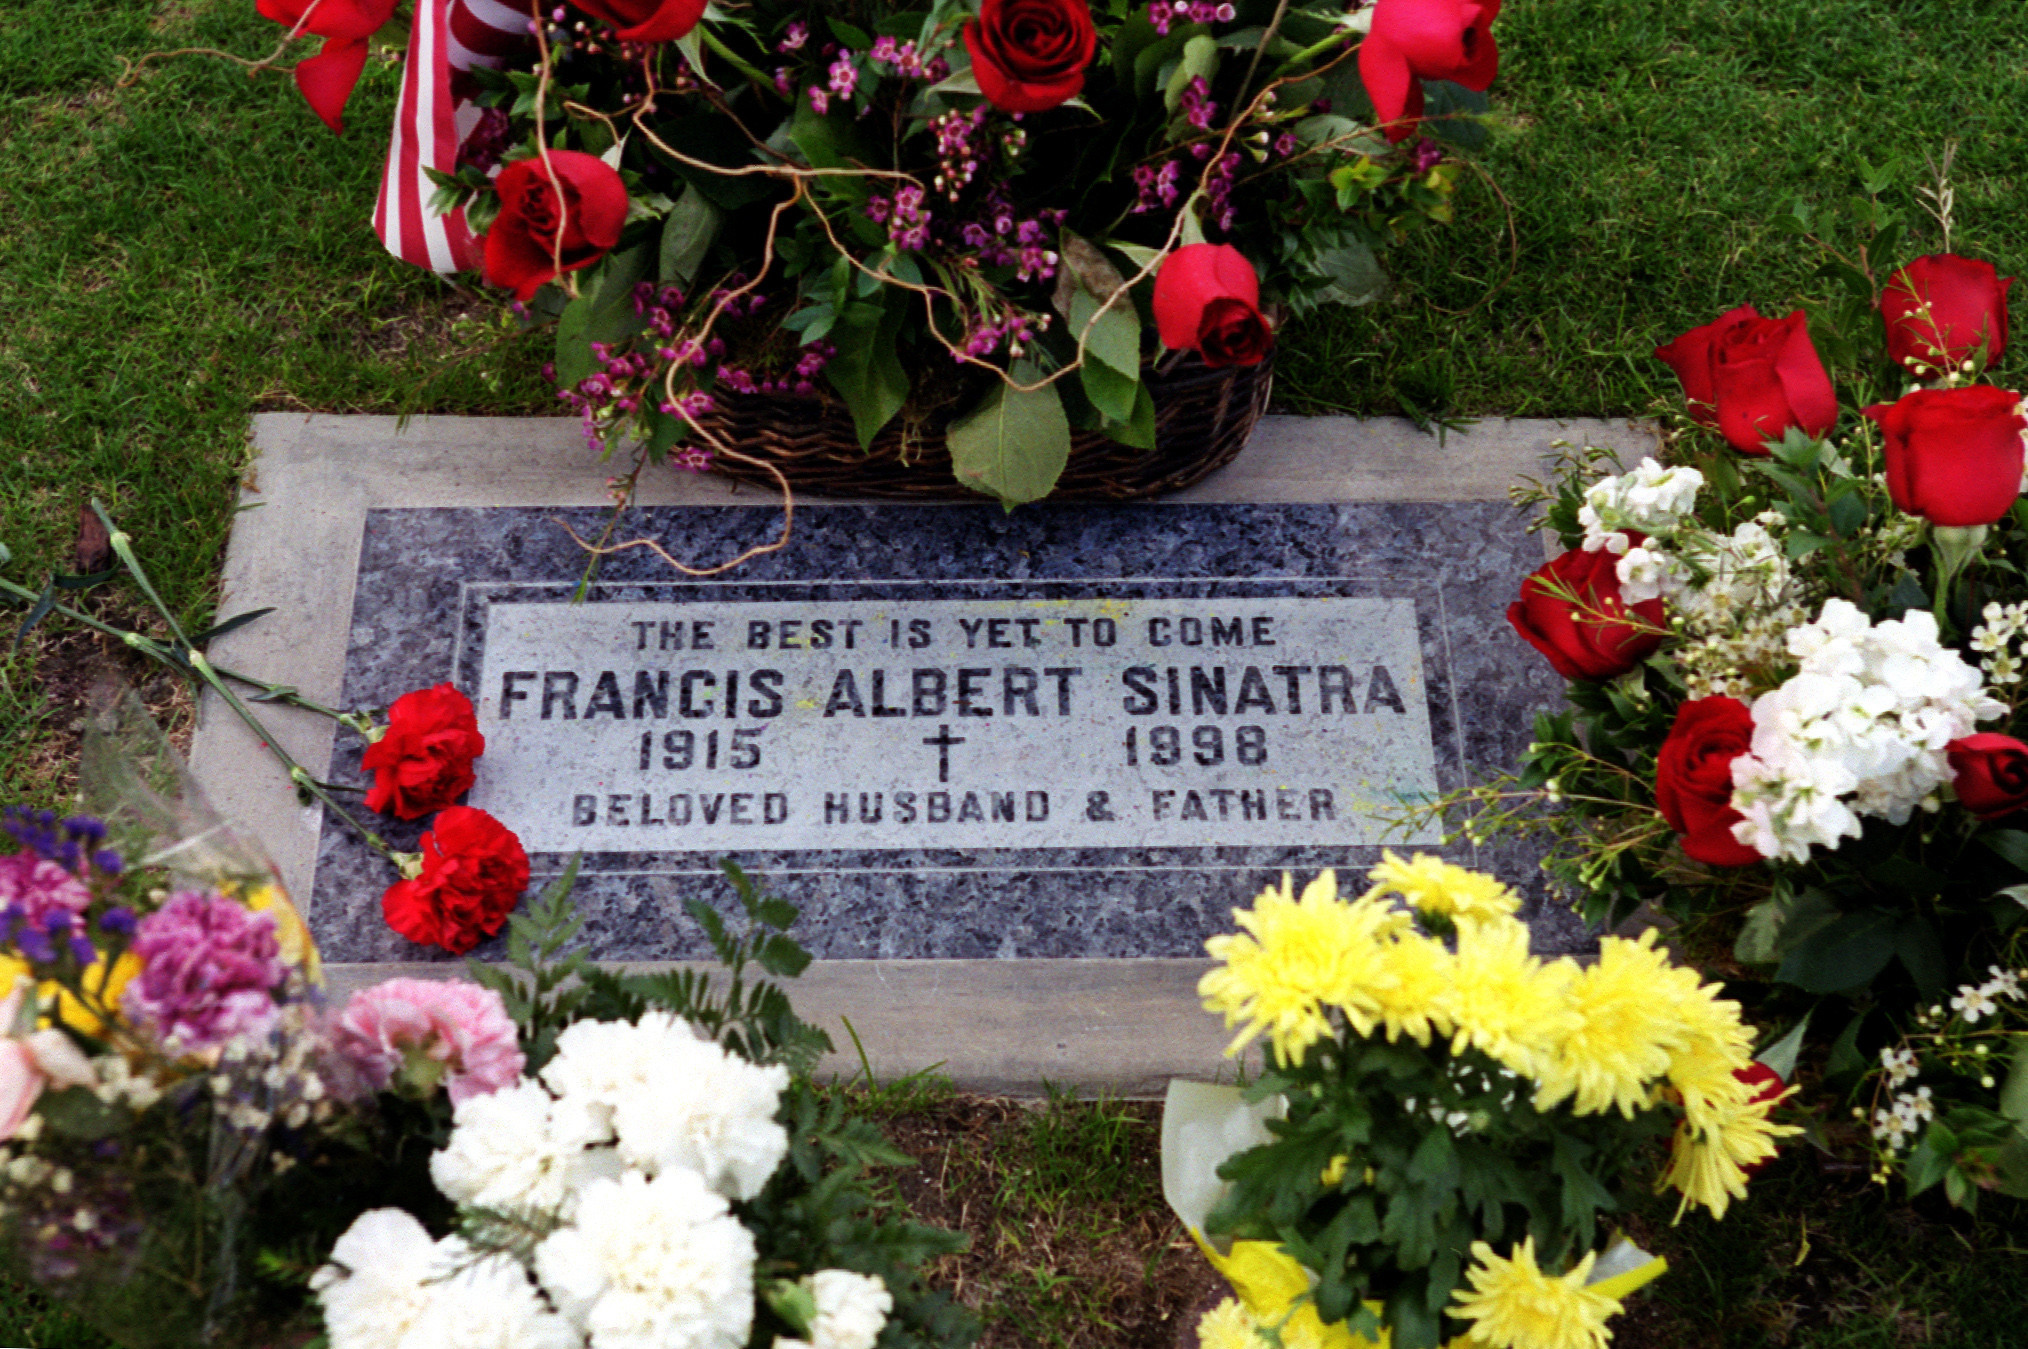 Still missing frank sinatra 5 ways to celebrate his 100th birthday 5 visit his grave mightylinksfo